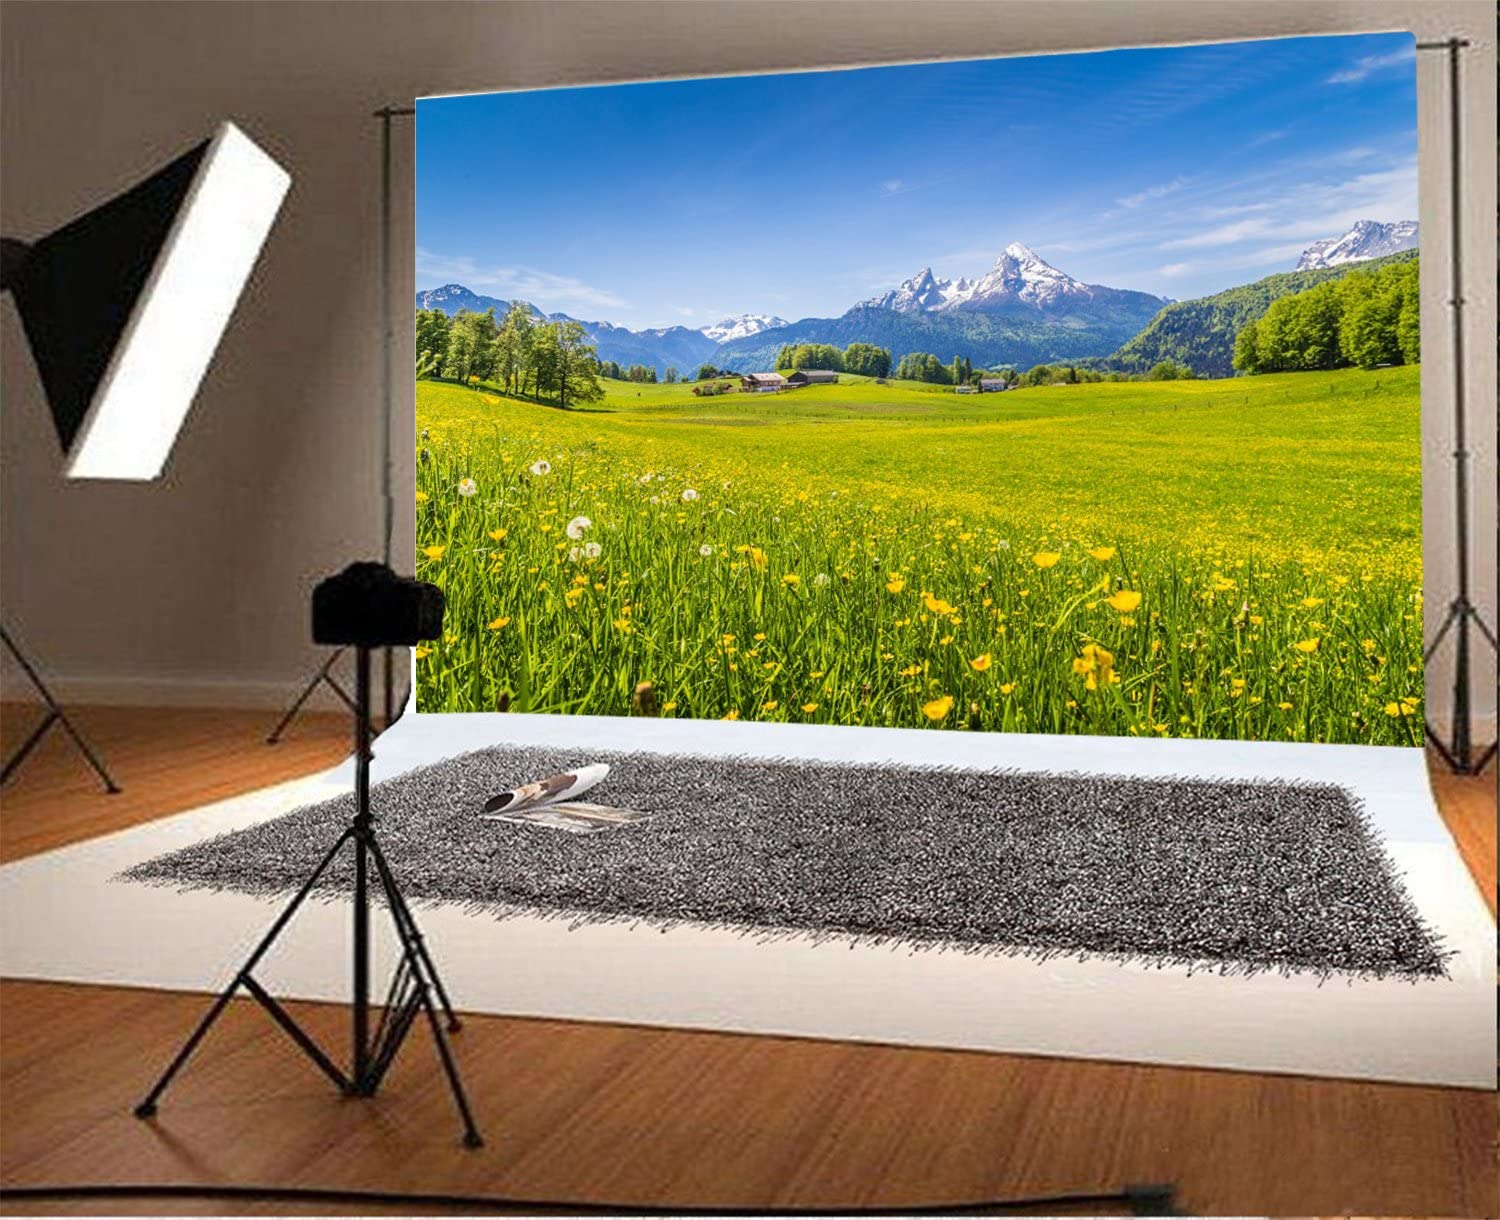 Laeacco 7x5FT Vinyl Backdrop Photography Alps Landscape Background Rural Countryside Grassland Meadow Flowers and Green Pasture Scenery Backdrop Outdoors Photo Background Adult Children Portrait